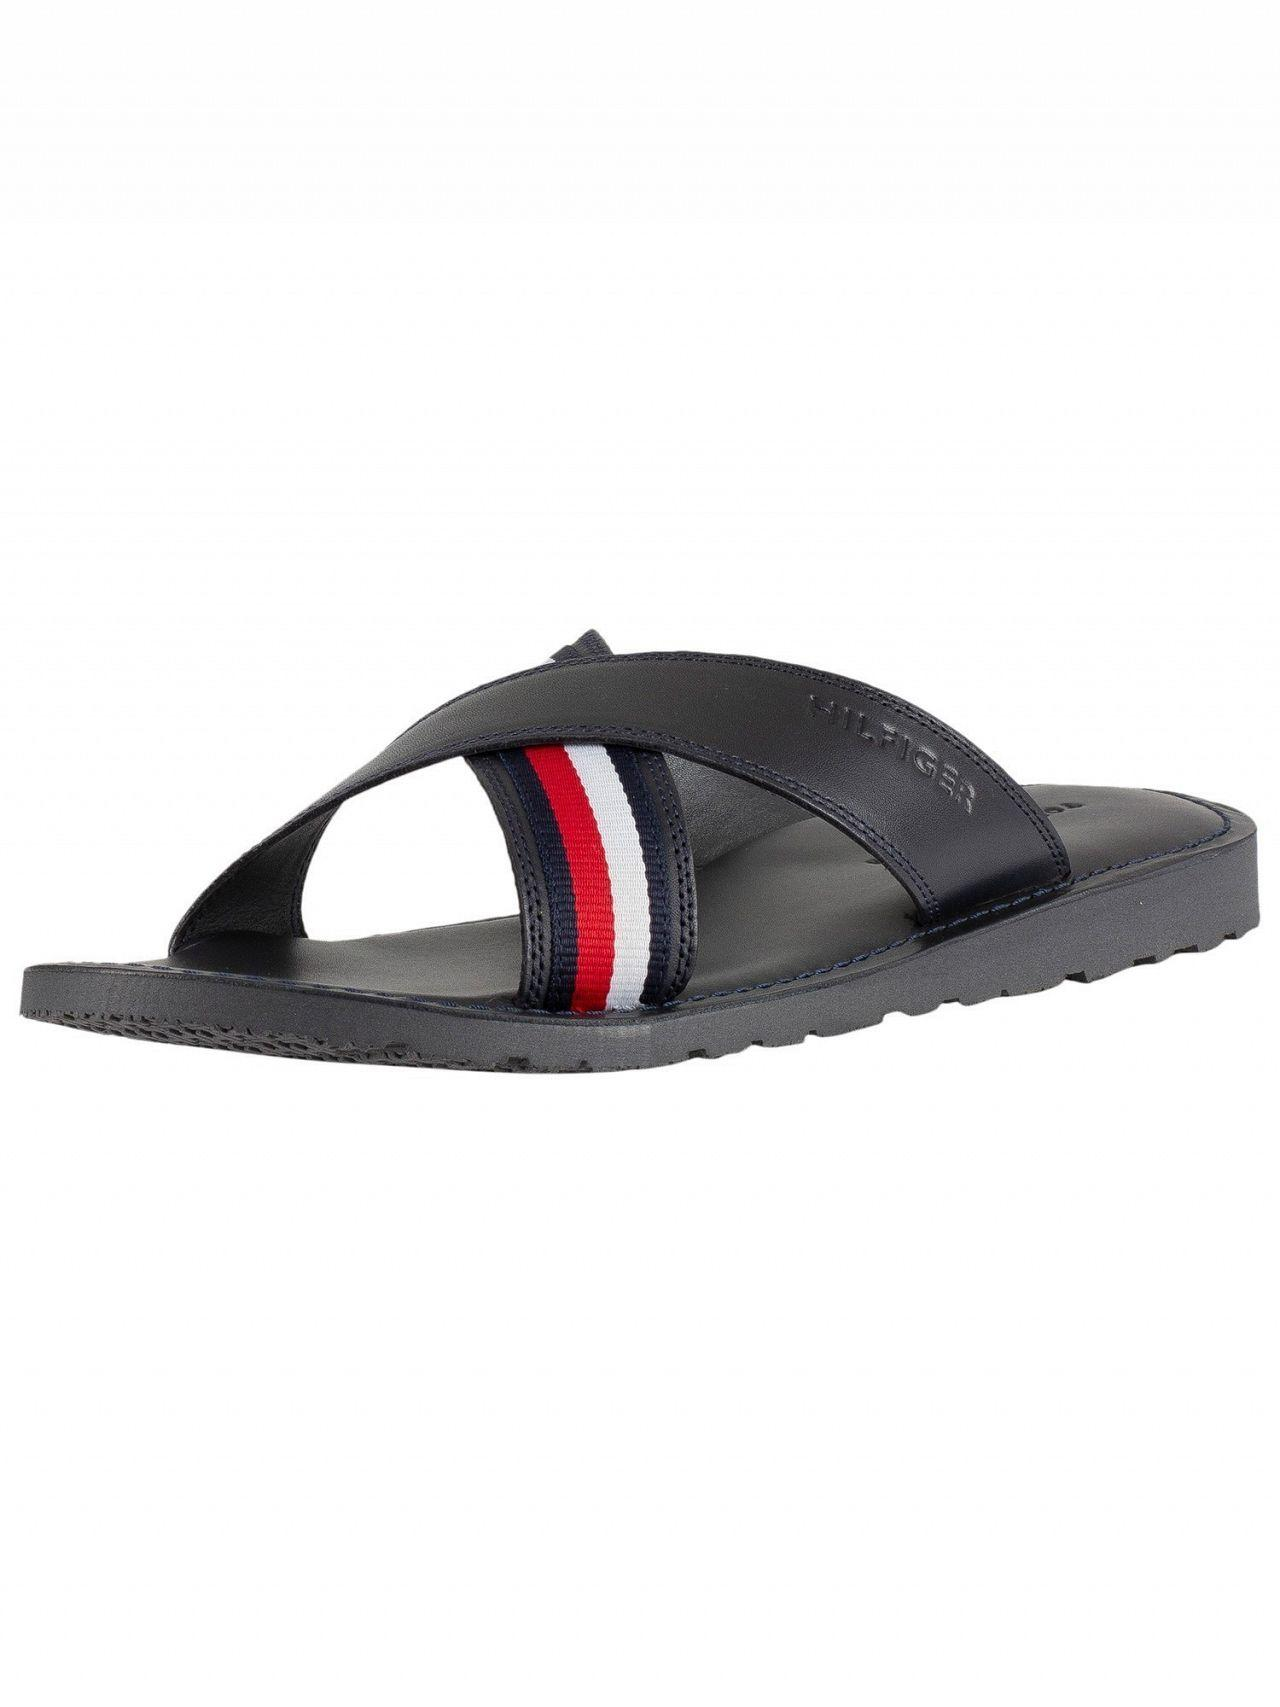 ef6c47409 Lyst - Tommy Hilfiger Midnight Criss Cross Leather Sandals in Blue ...